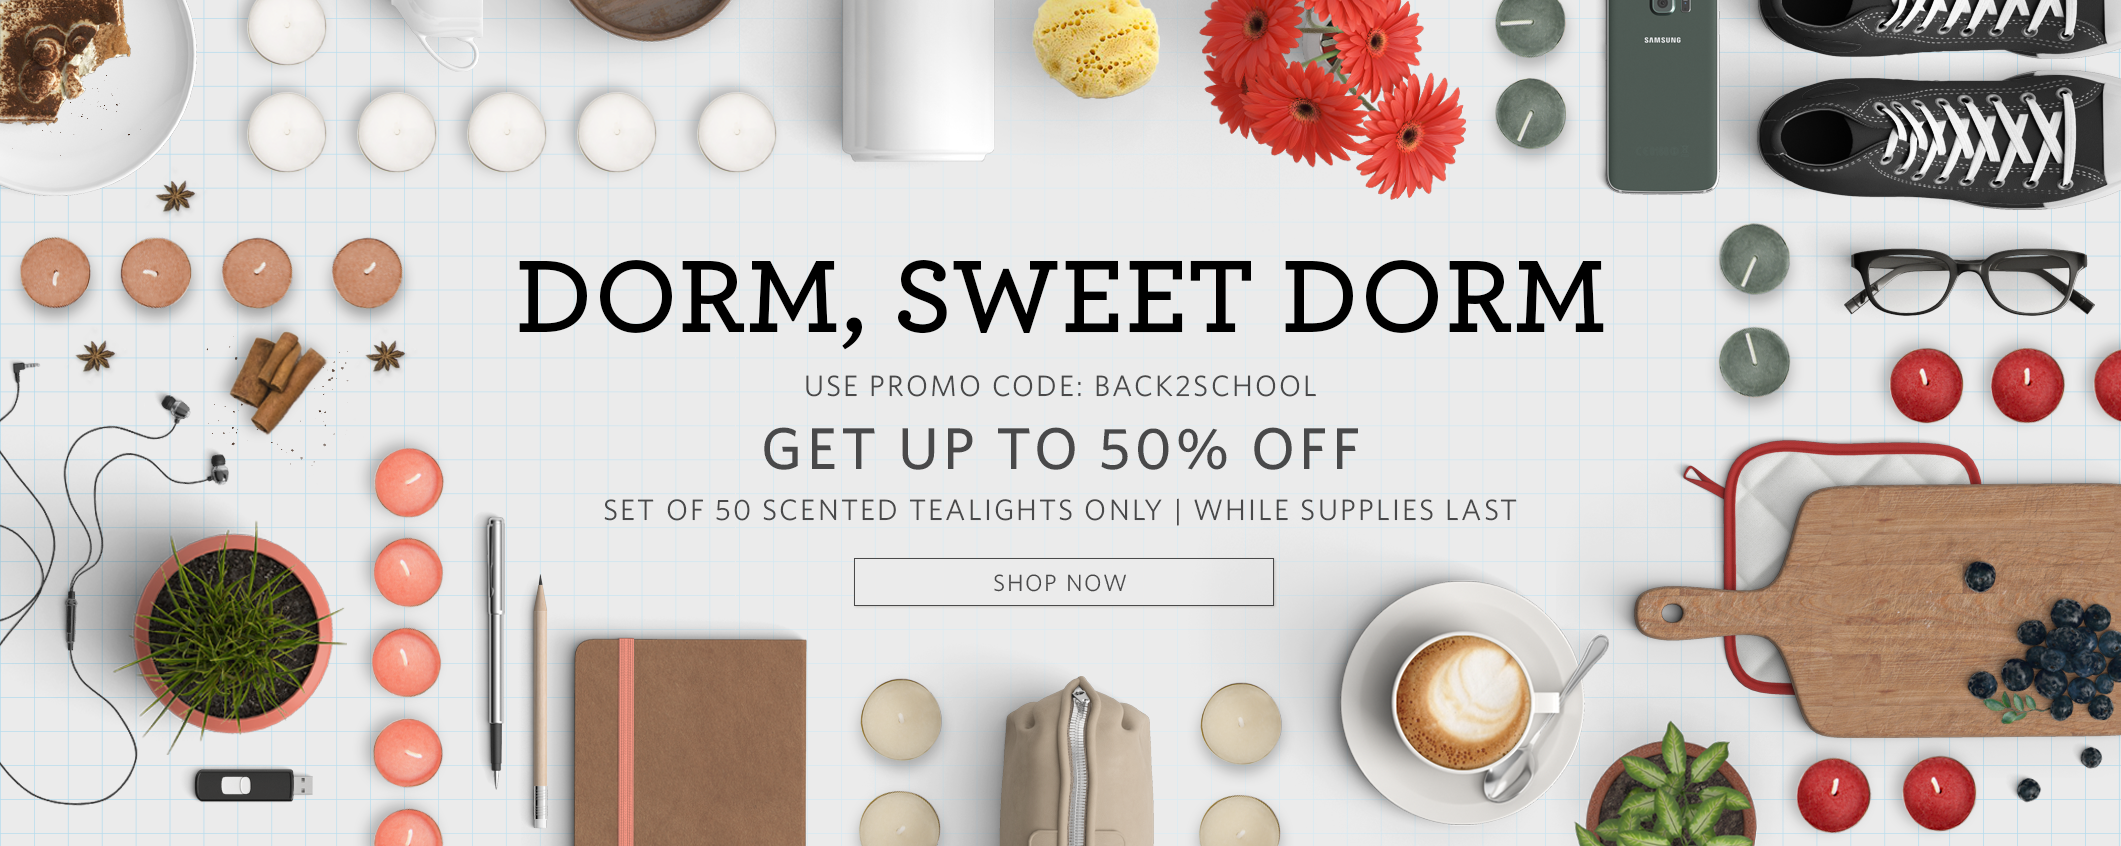 Dorm, sweet dorm. Up to an additional 50% off set of 50 scented tealights. Use promo code BACK2SCHOOL. Select products only, while supplies last.